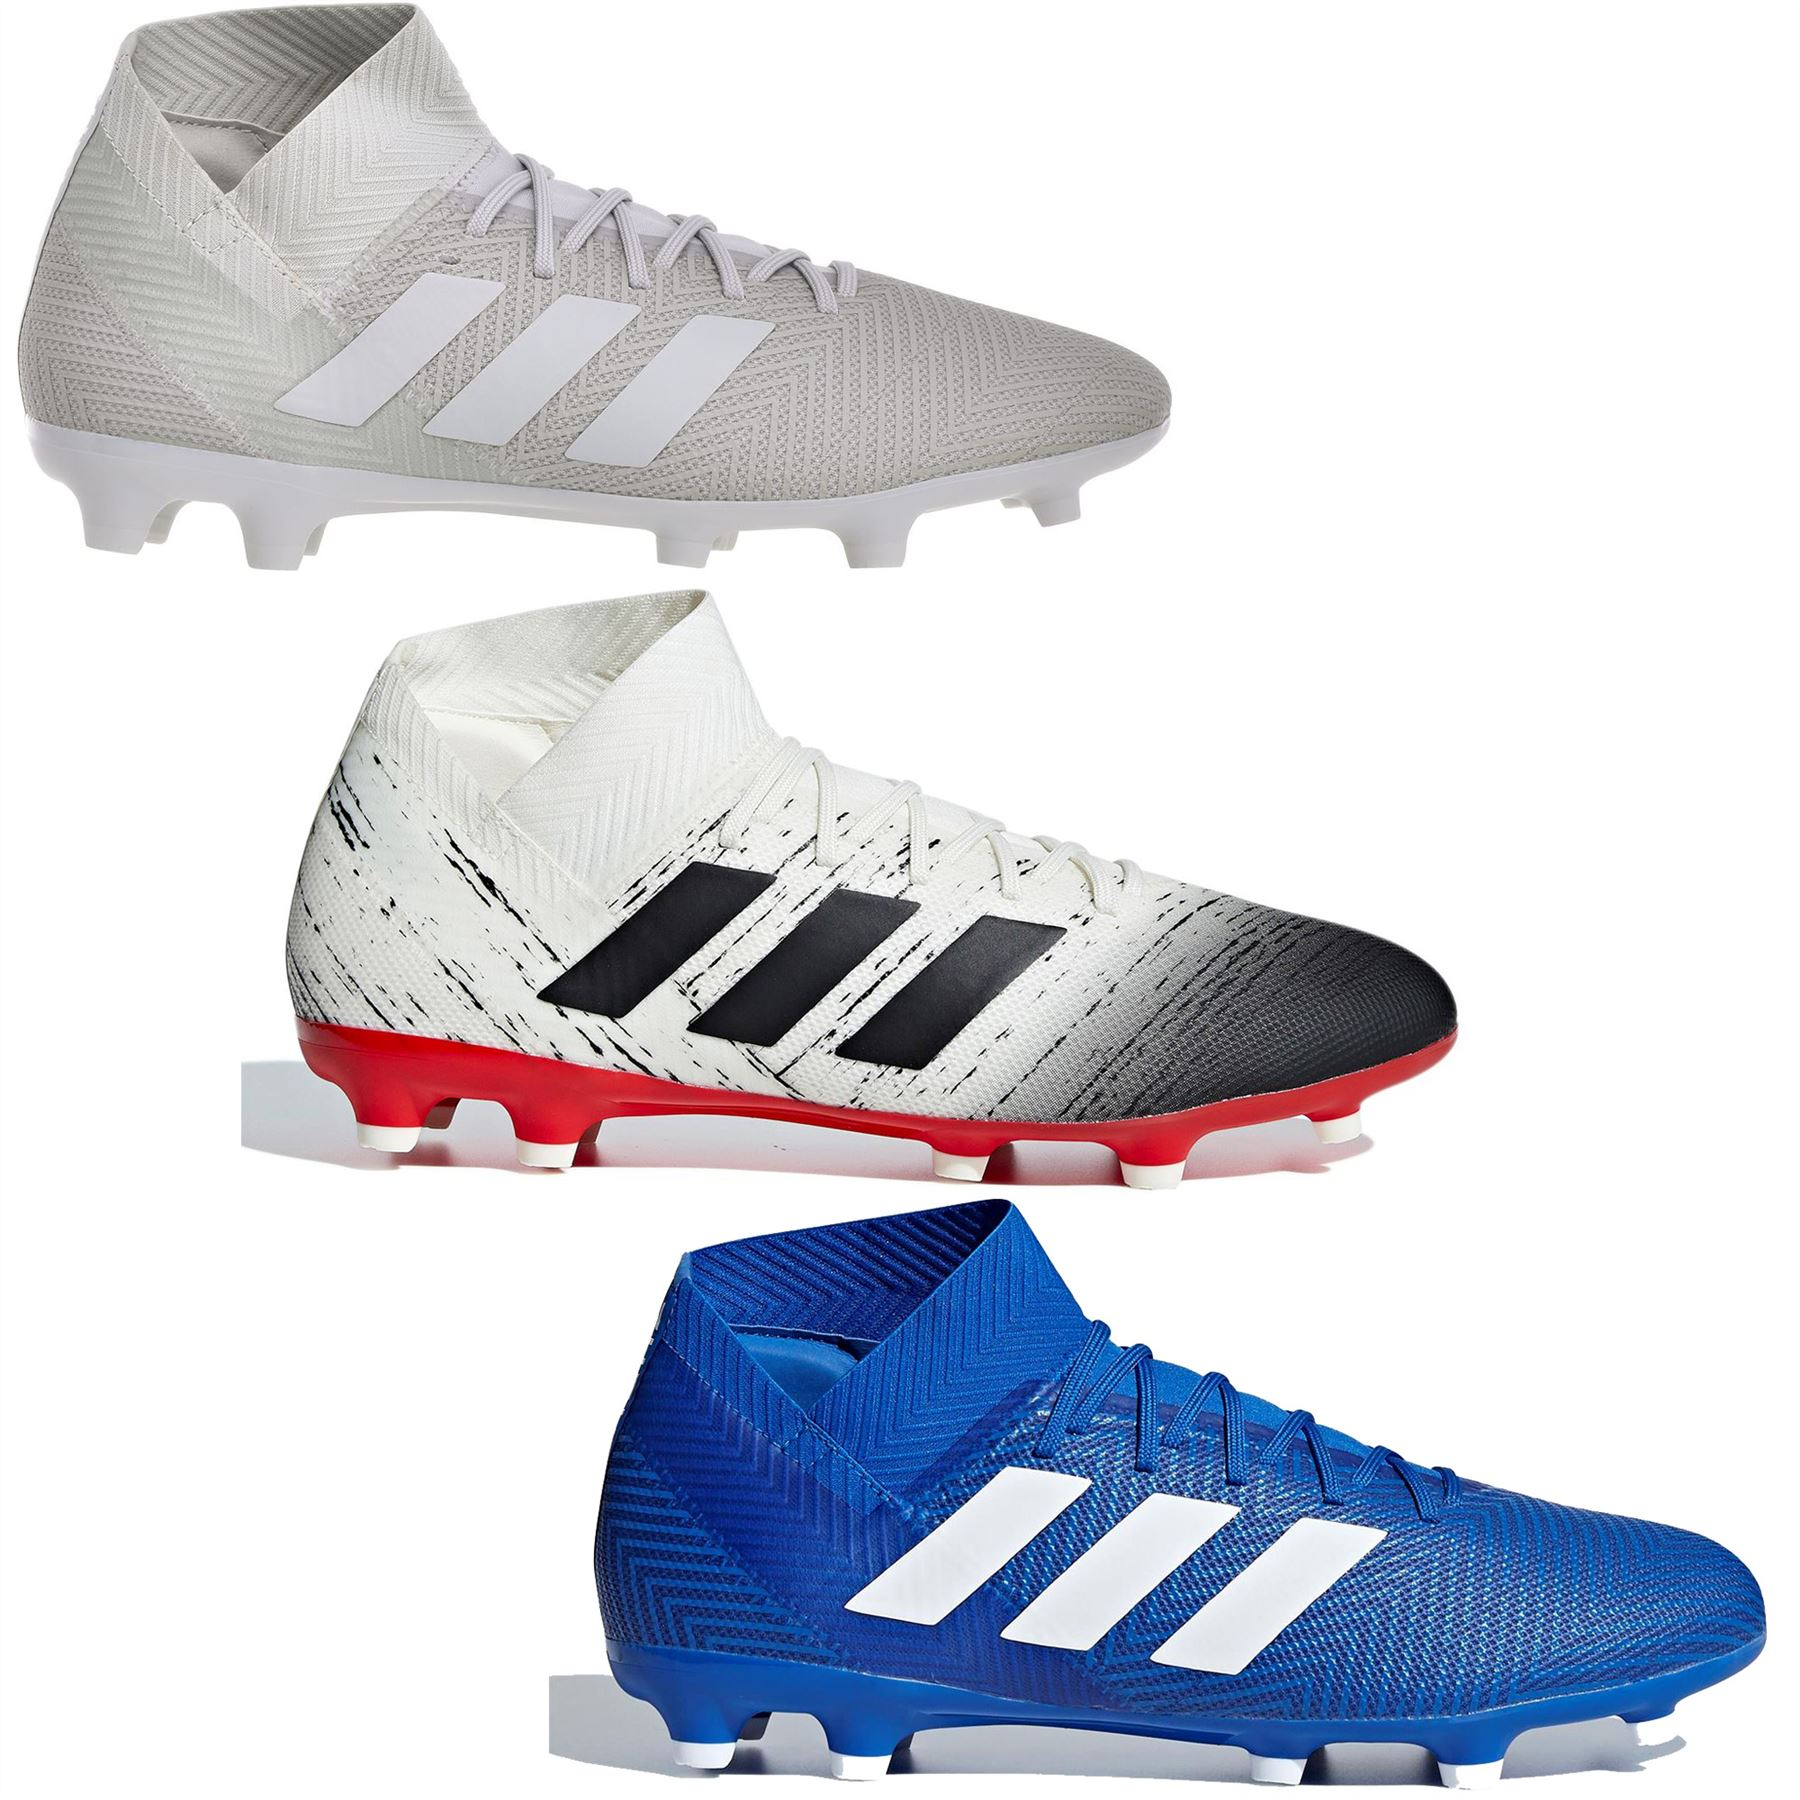 3ad9956ae adidas Nemeziz 18.3 FG Firm Ground Football Boots Mens Soccer Shoes Cleats